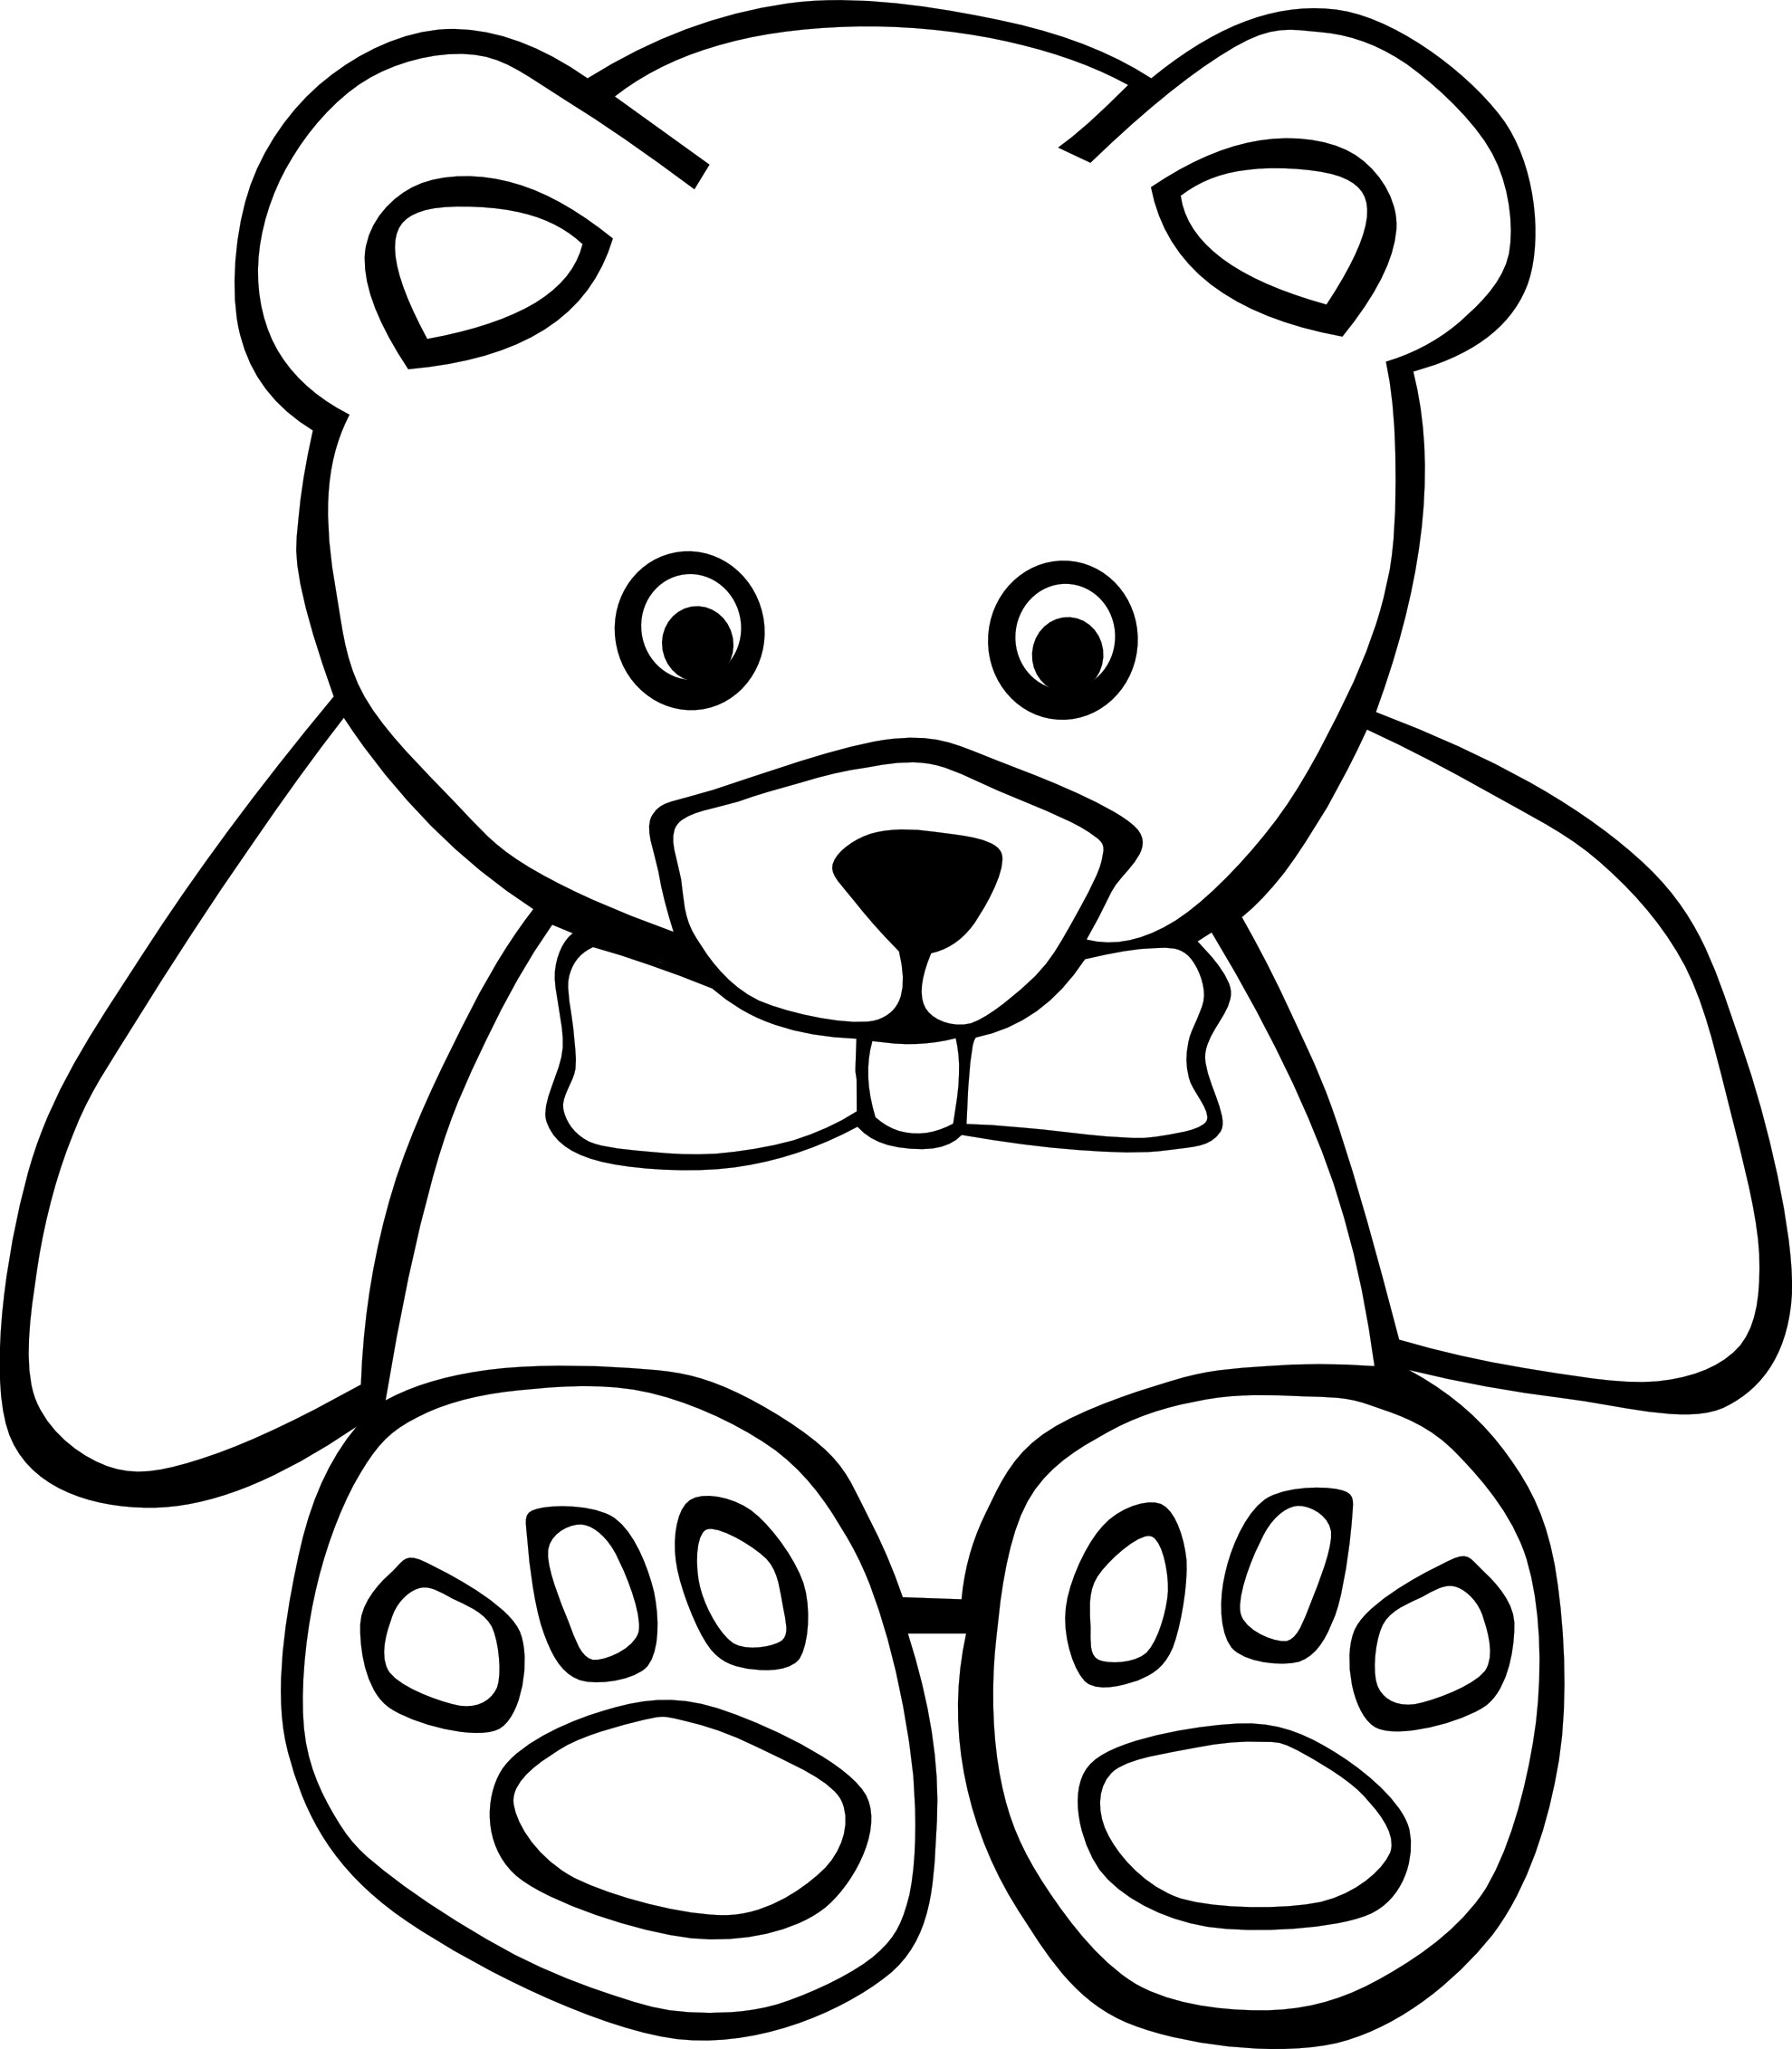 coloring picture bear free bear coloring pages bear coloring picture 1 1